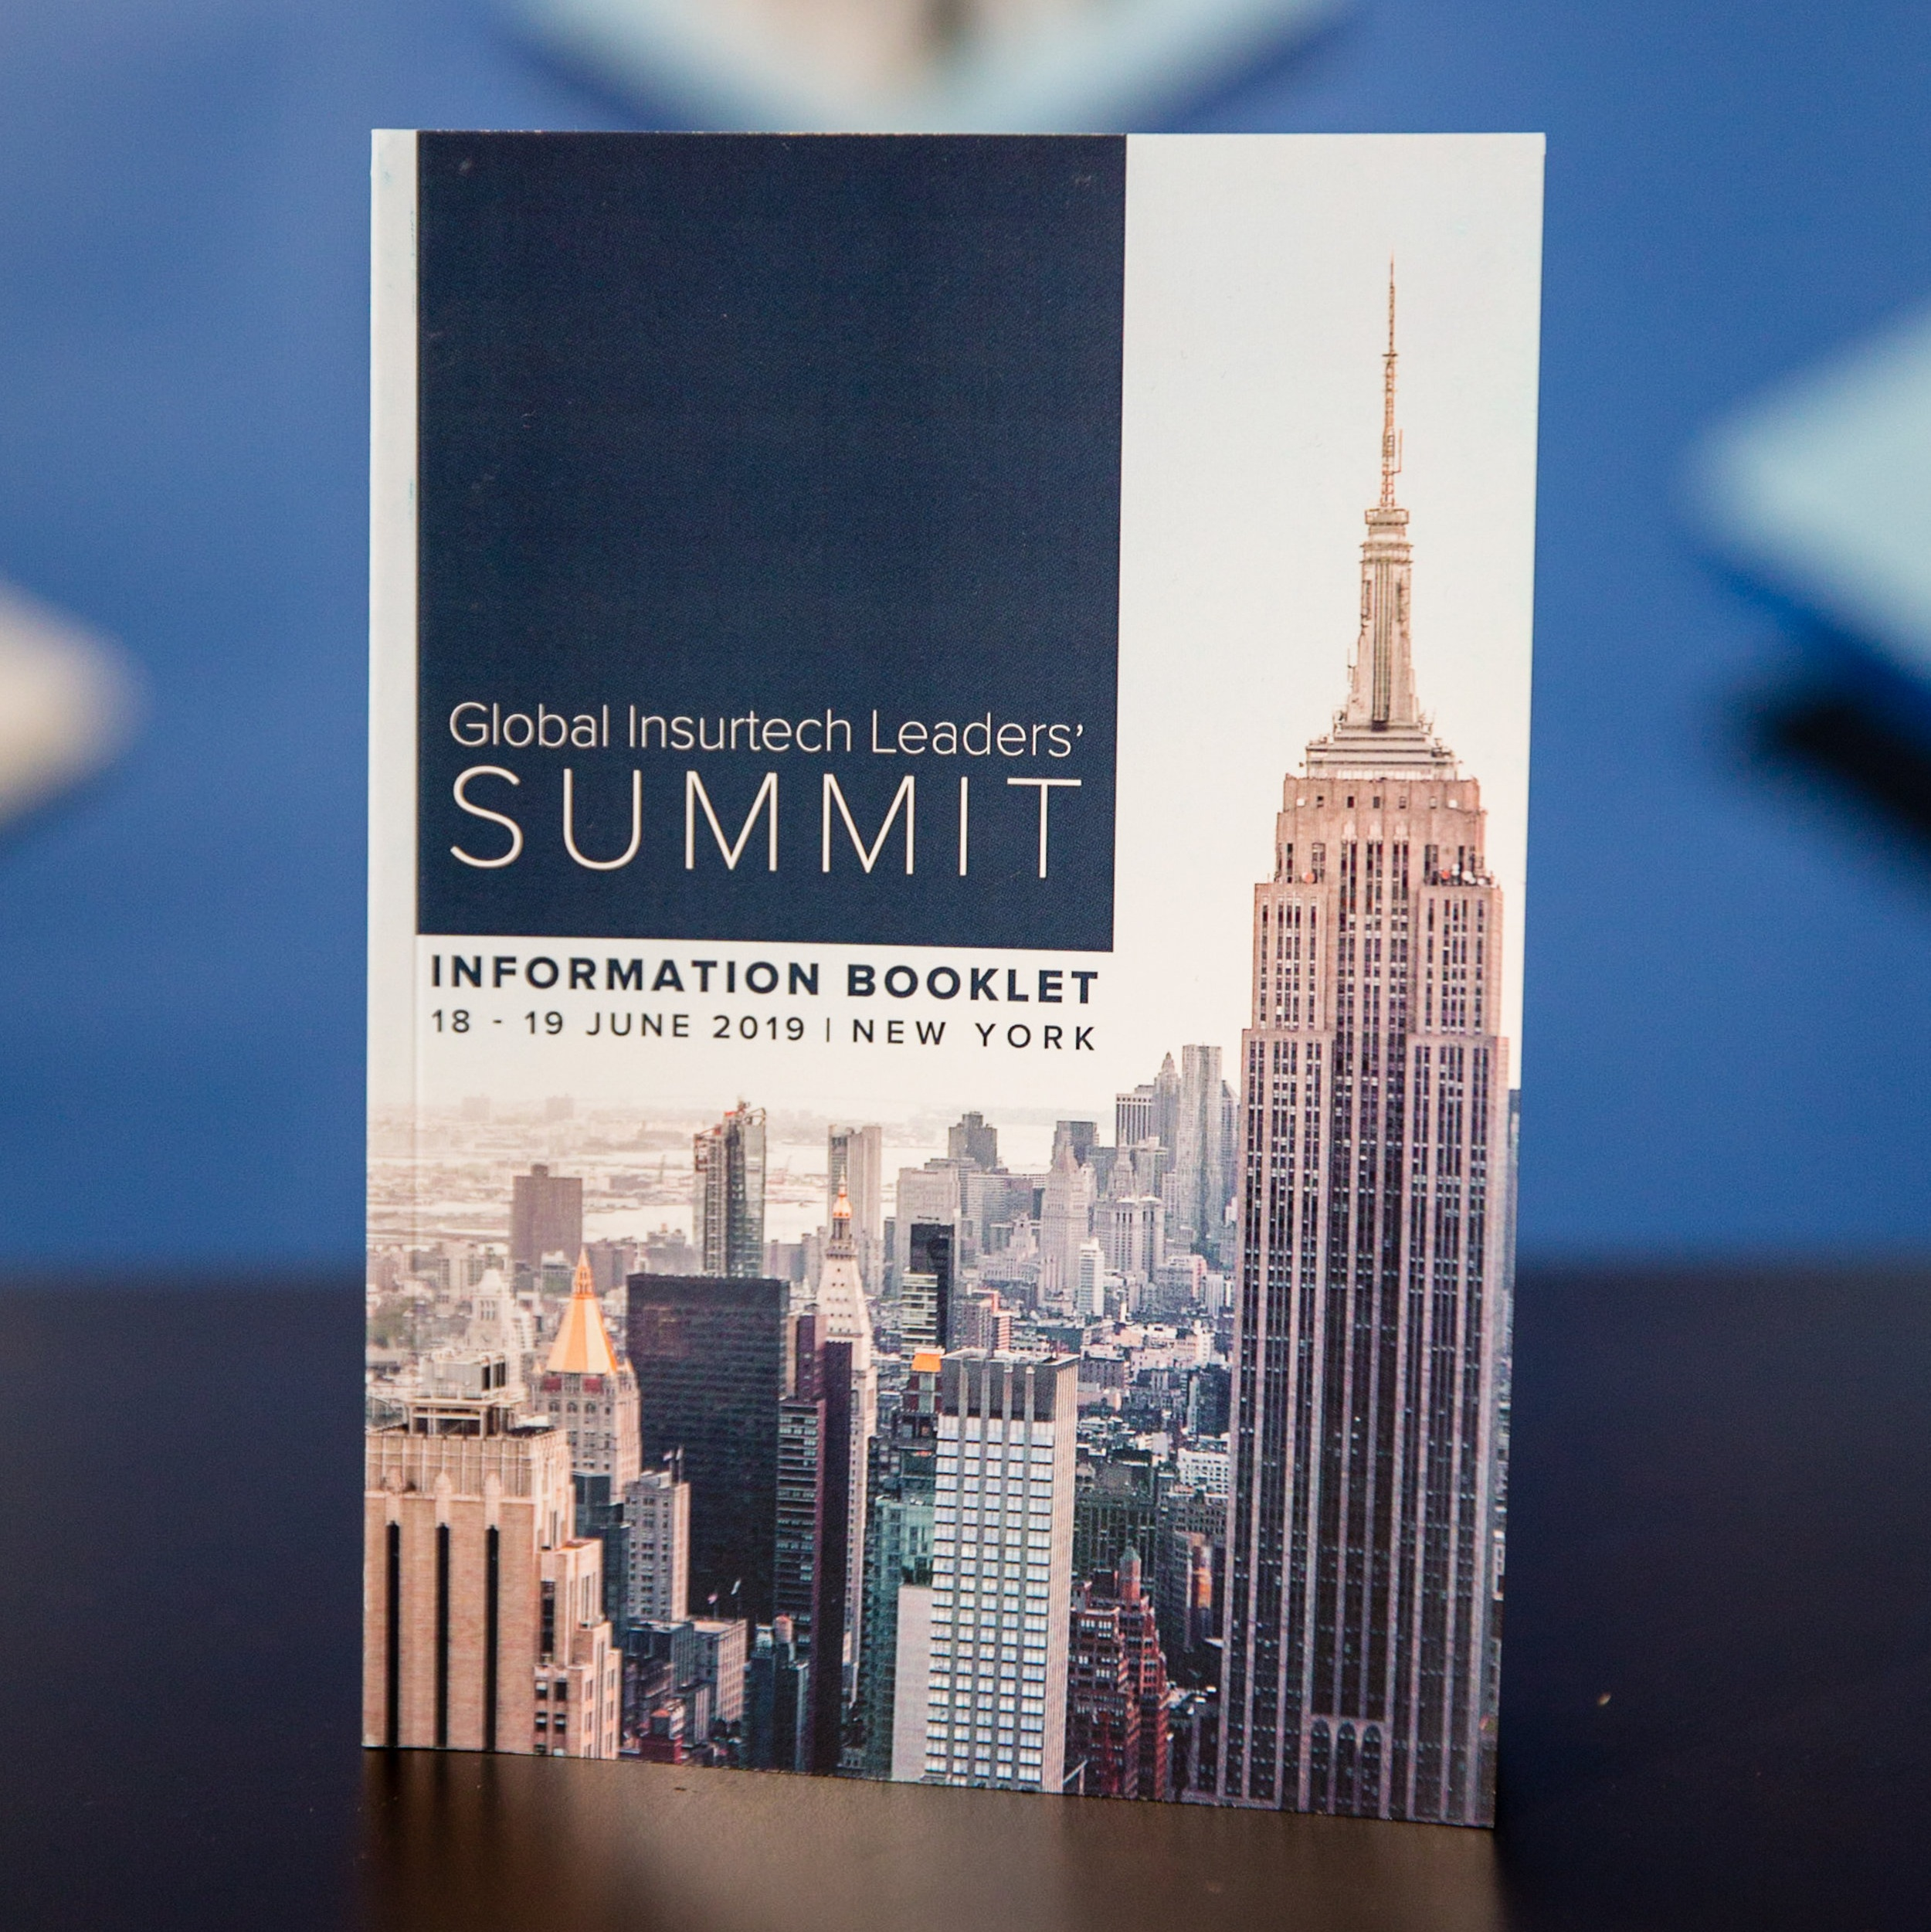 96-Page Booklet - At every Insurtech Insights event we produce a booklet with information on the panels, speakers, floor plans, sponsors, and more.This is hand-delivered to every single attendee alongside their badges.